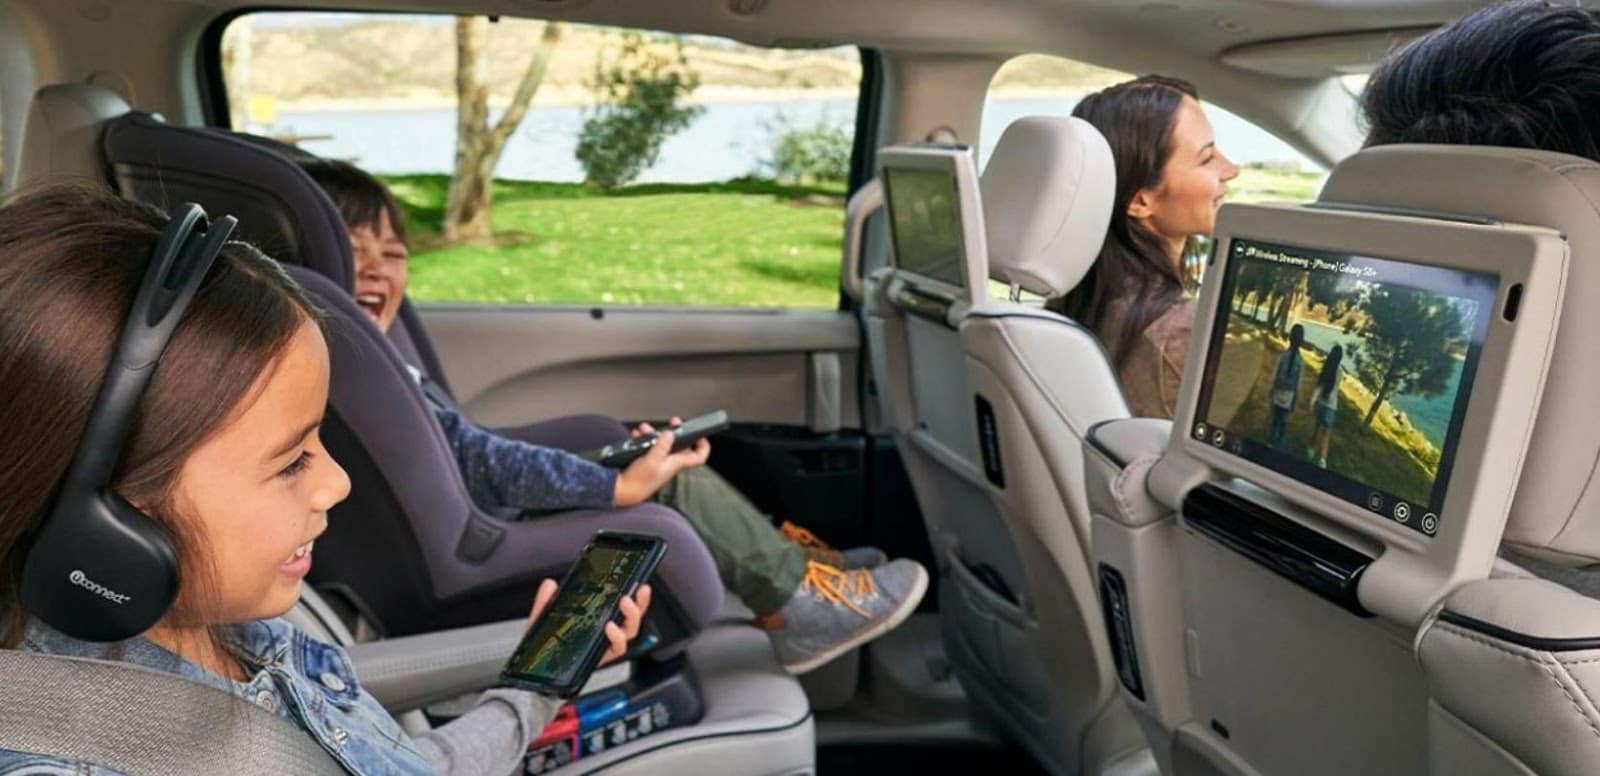 kids in backseat of 2019 chrysler pacifica watching tv on back of seat with headphones and holding smartphone while mom drives